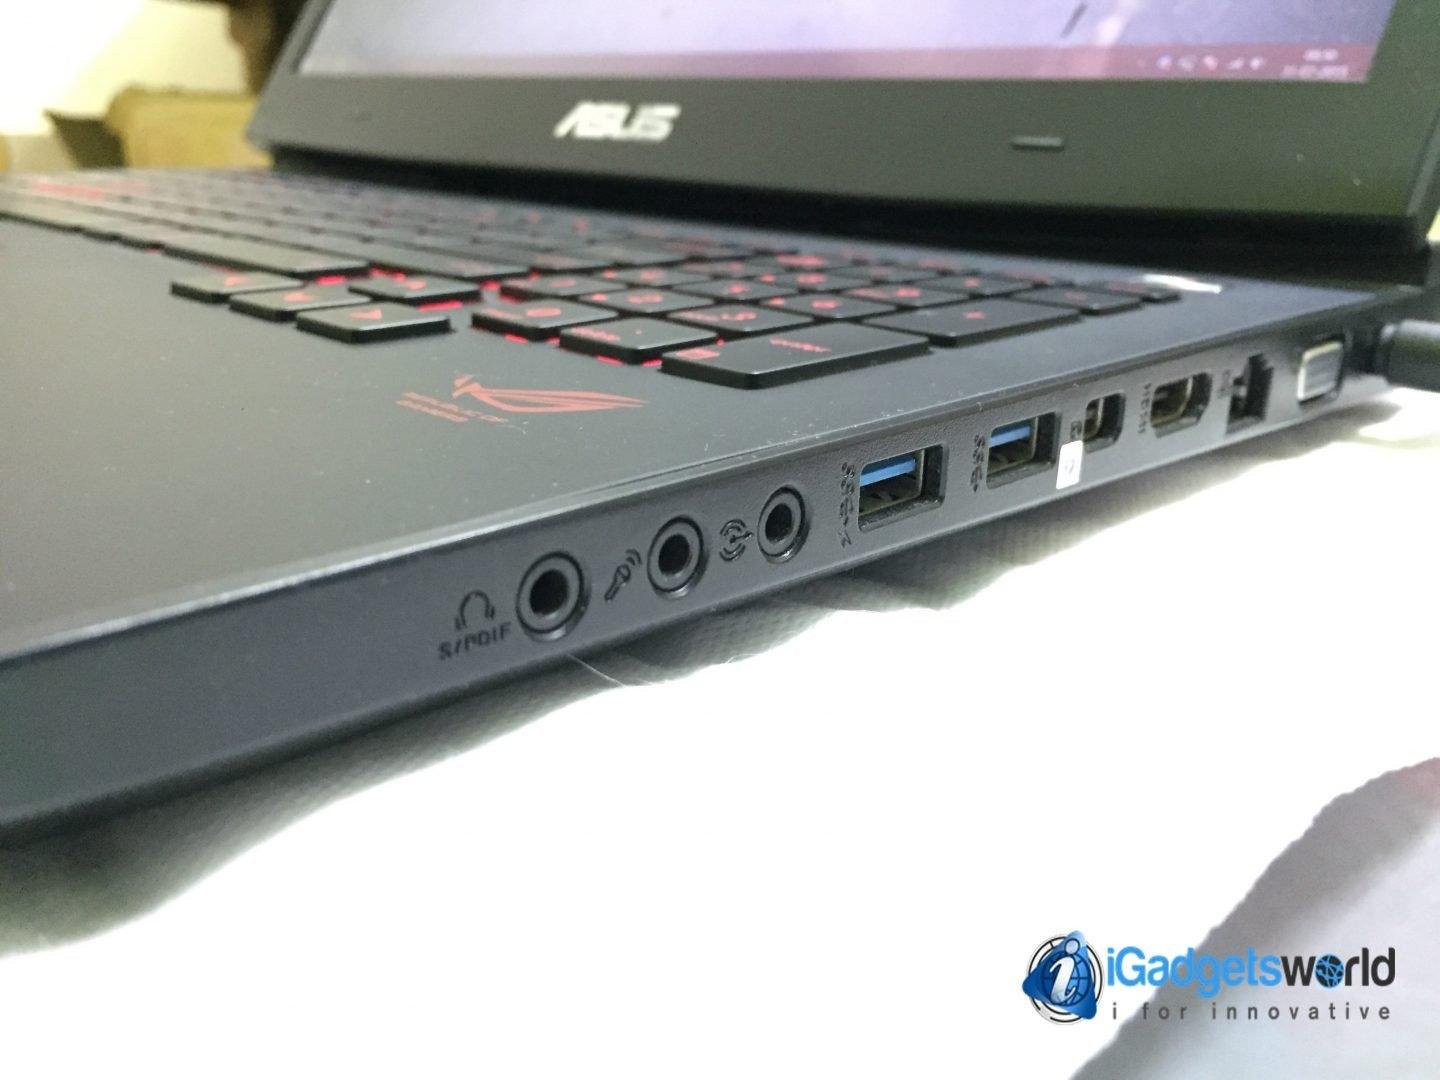 Asus ROG G751J Review: A Slightly Overpriced Ultra High-End Gaming Laptop - 16